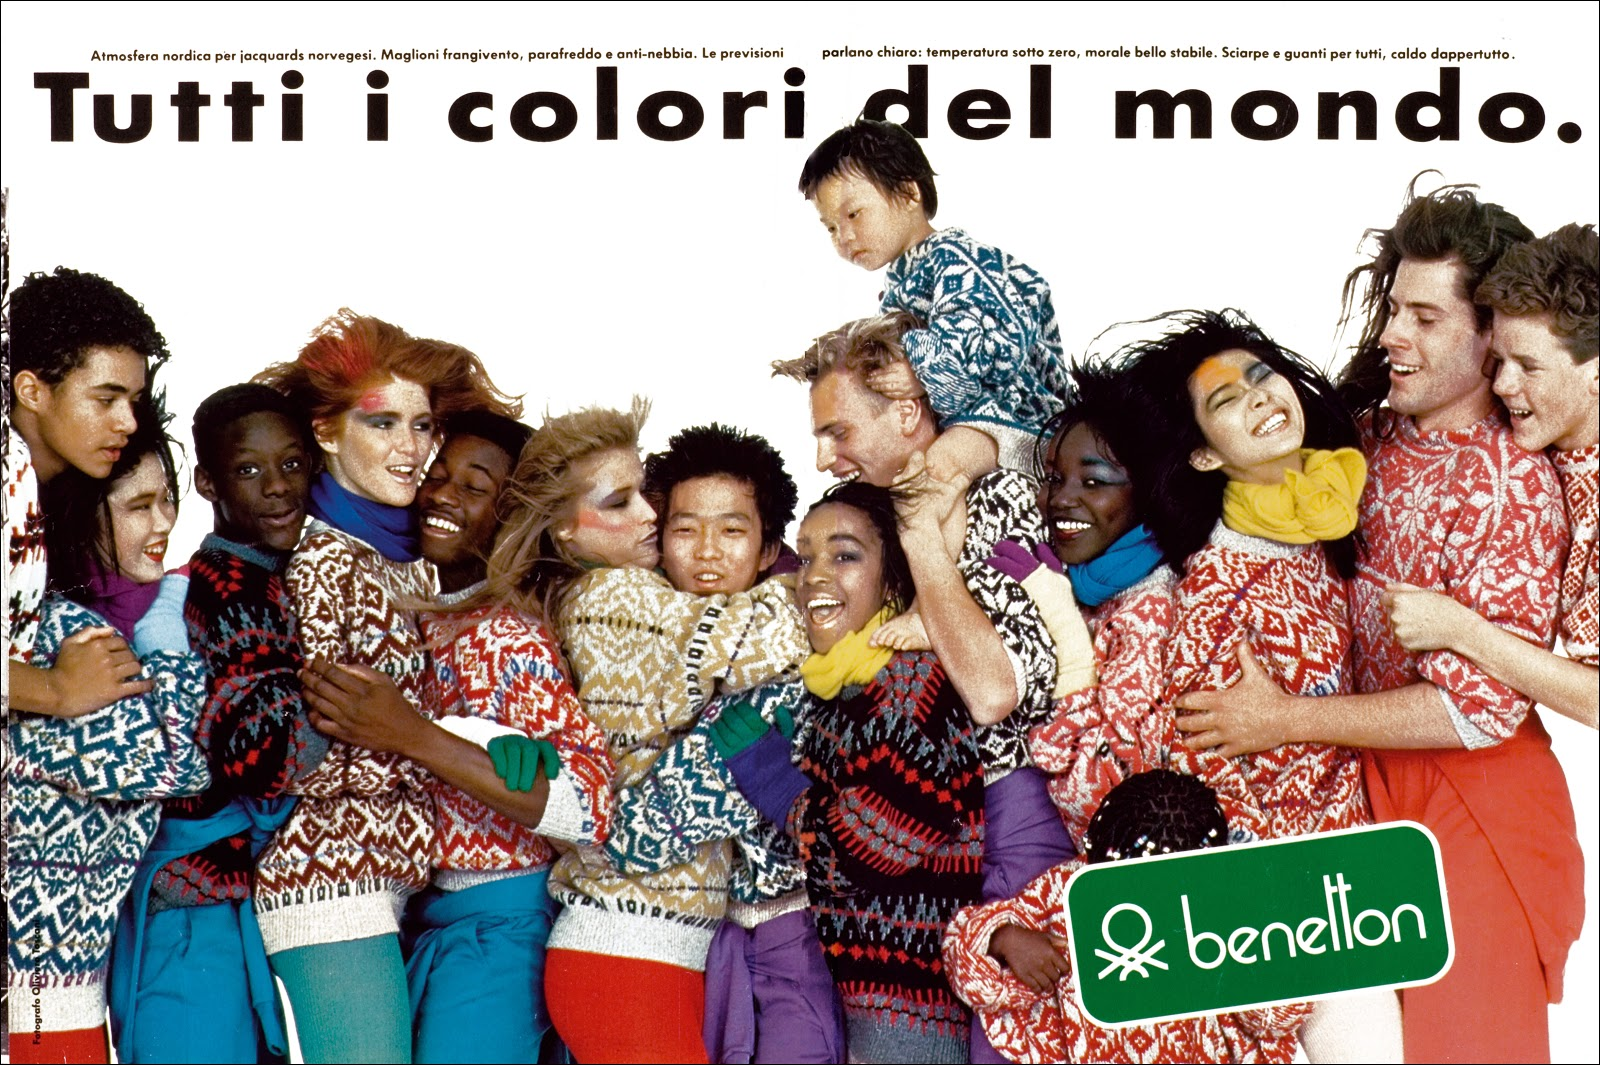 wonders of the history of graphic design visual documentation of the united colors of benetton. Black Bedroom Furniture Sets. Home Design Ideas